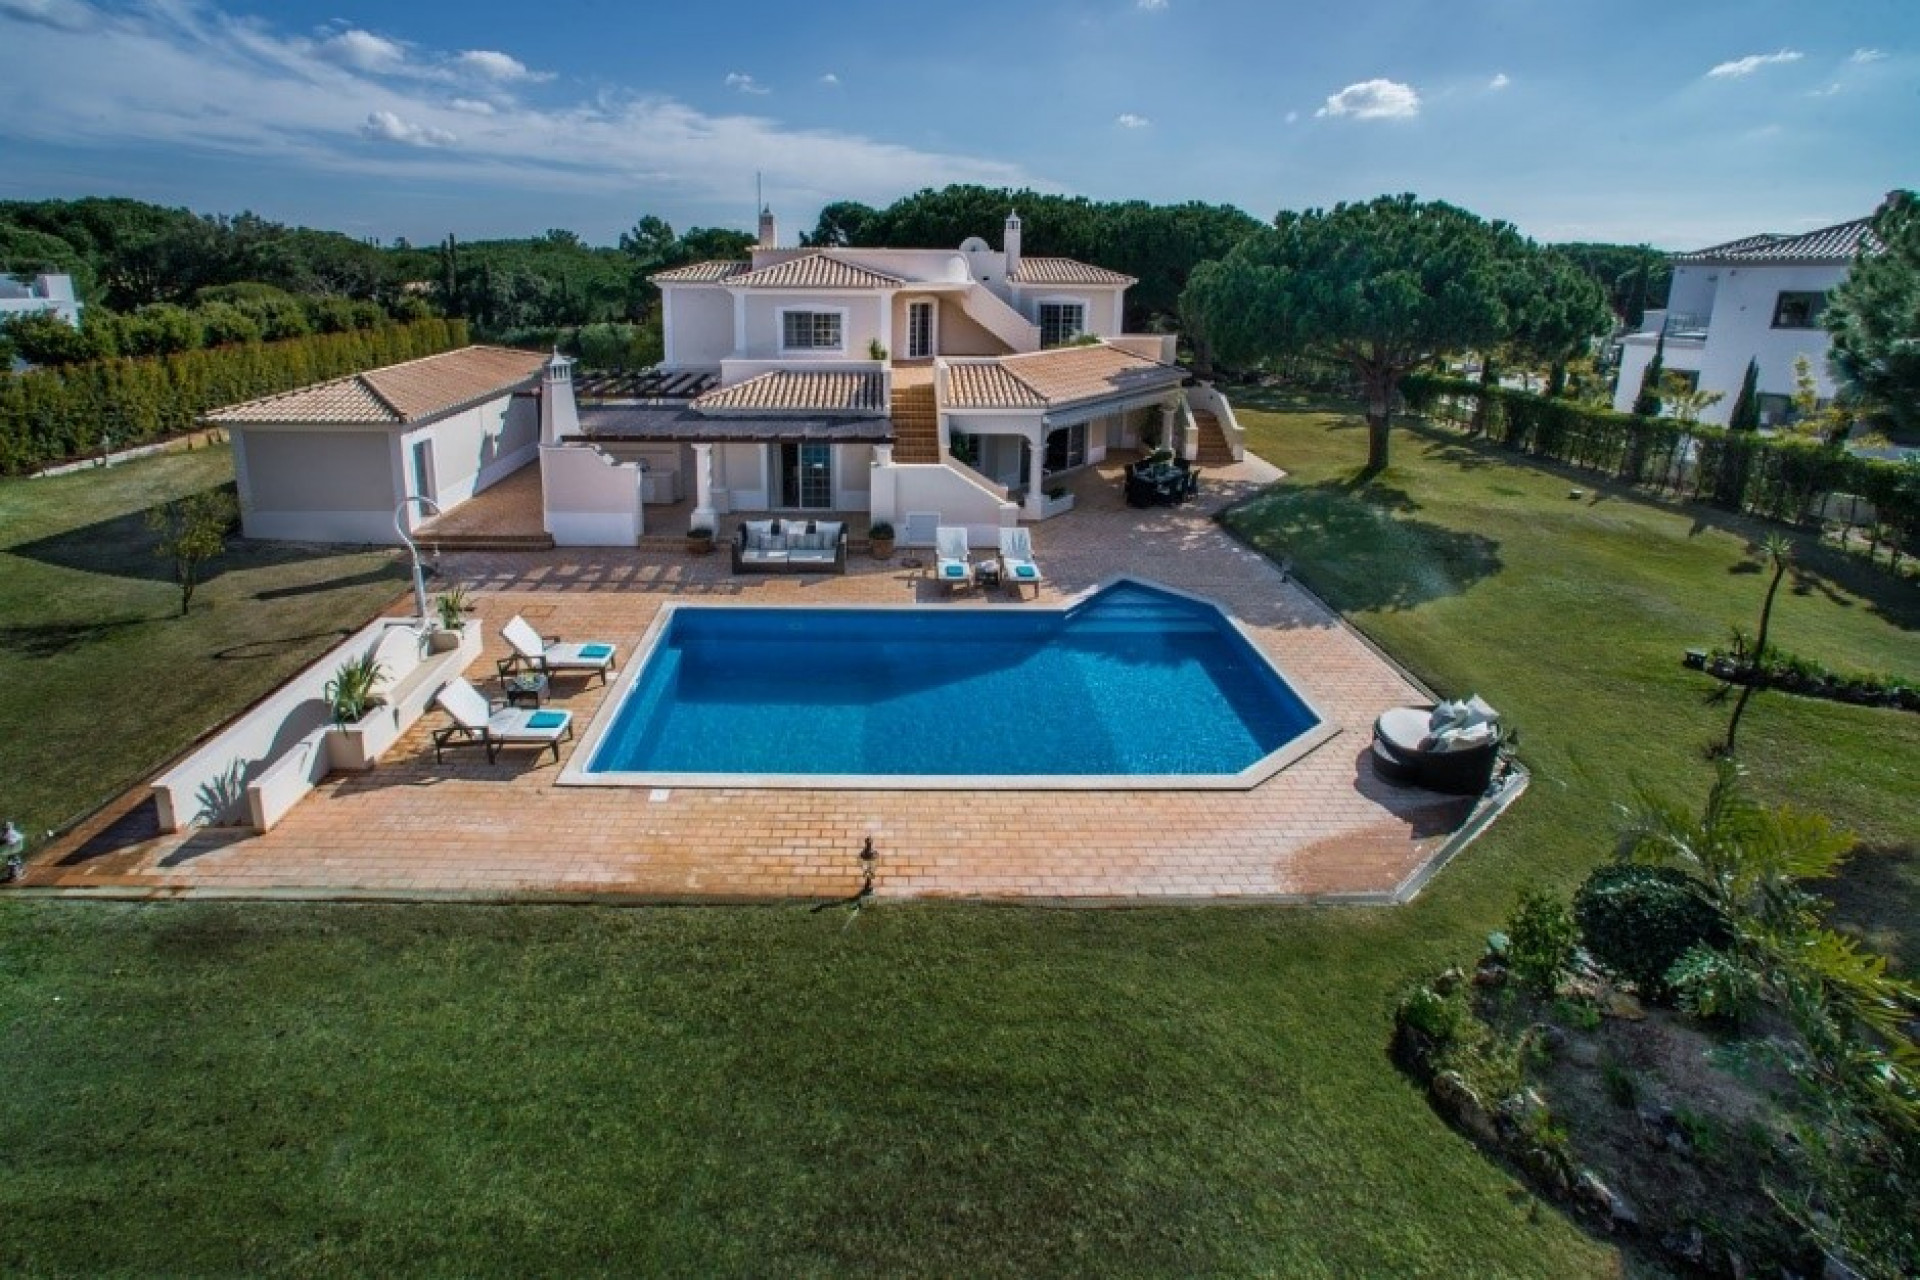 Algarve Holidays Luxury 4 Bedroom Villa Quinta do Lago With Private Pool Close To The Beach